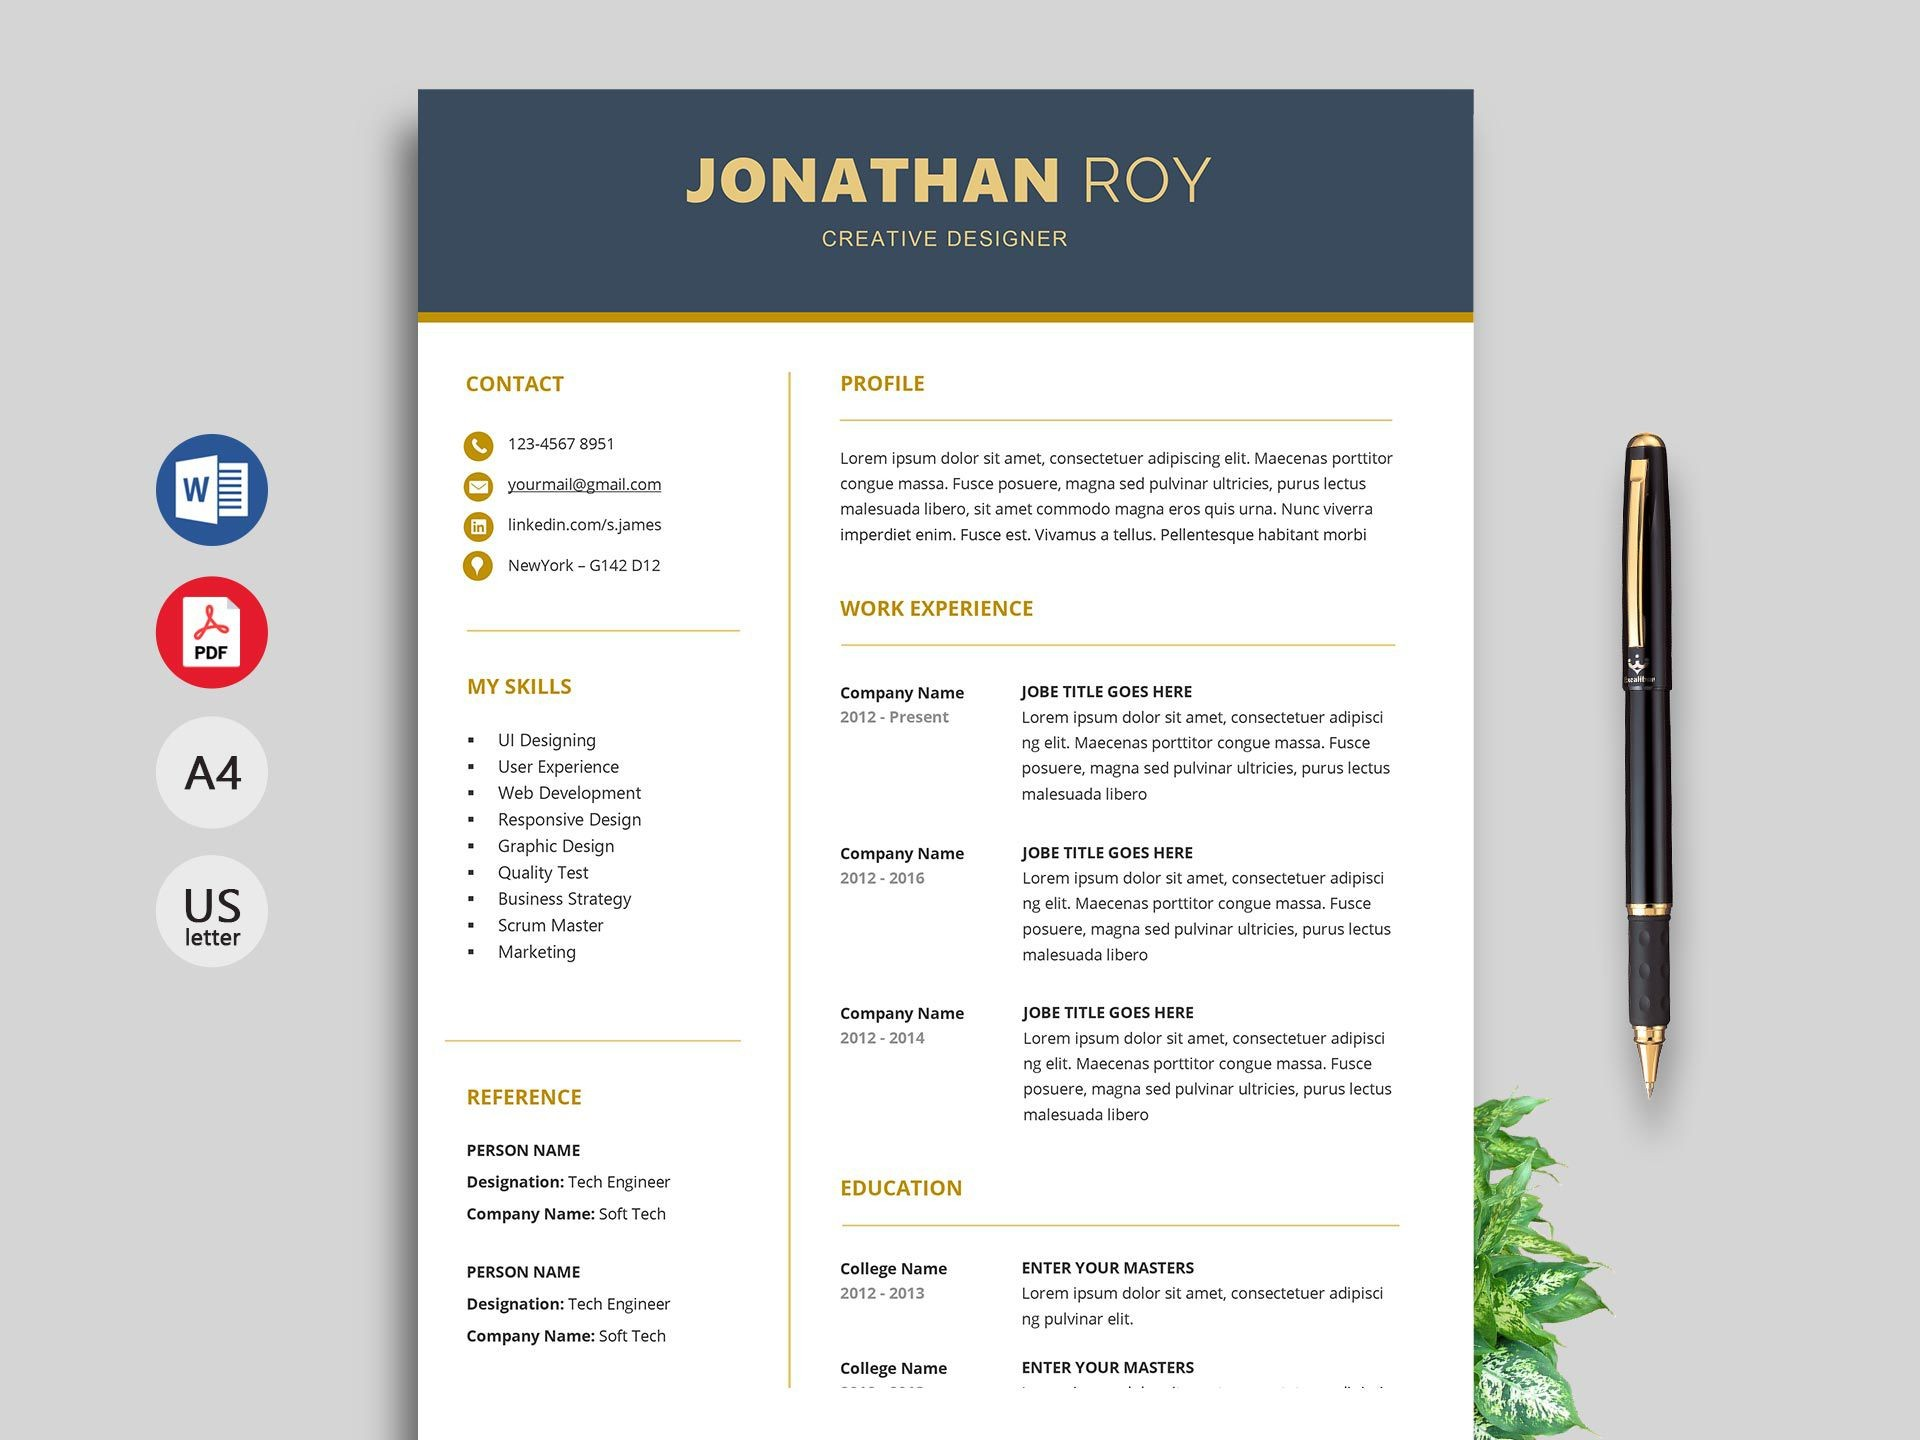 003 Astounding Downloadable Resume Template Word High Resolution  Free Download Philippine 20181920